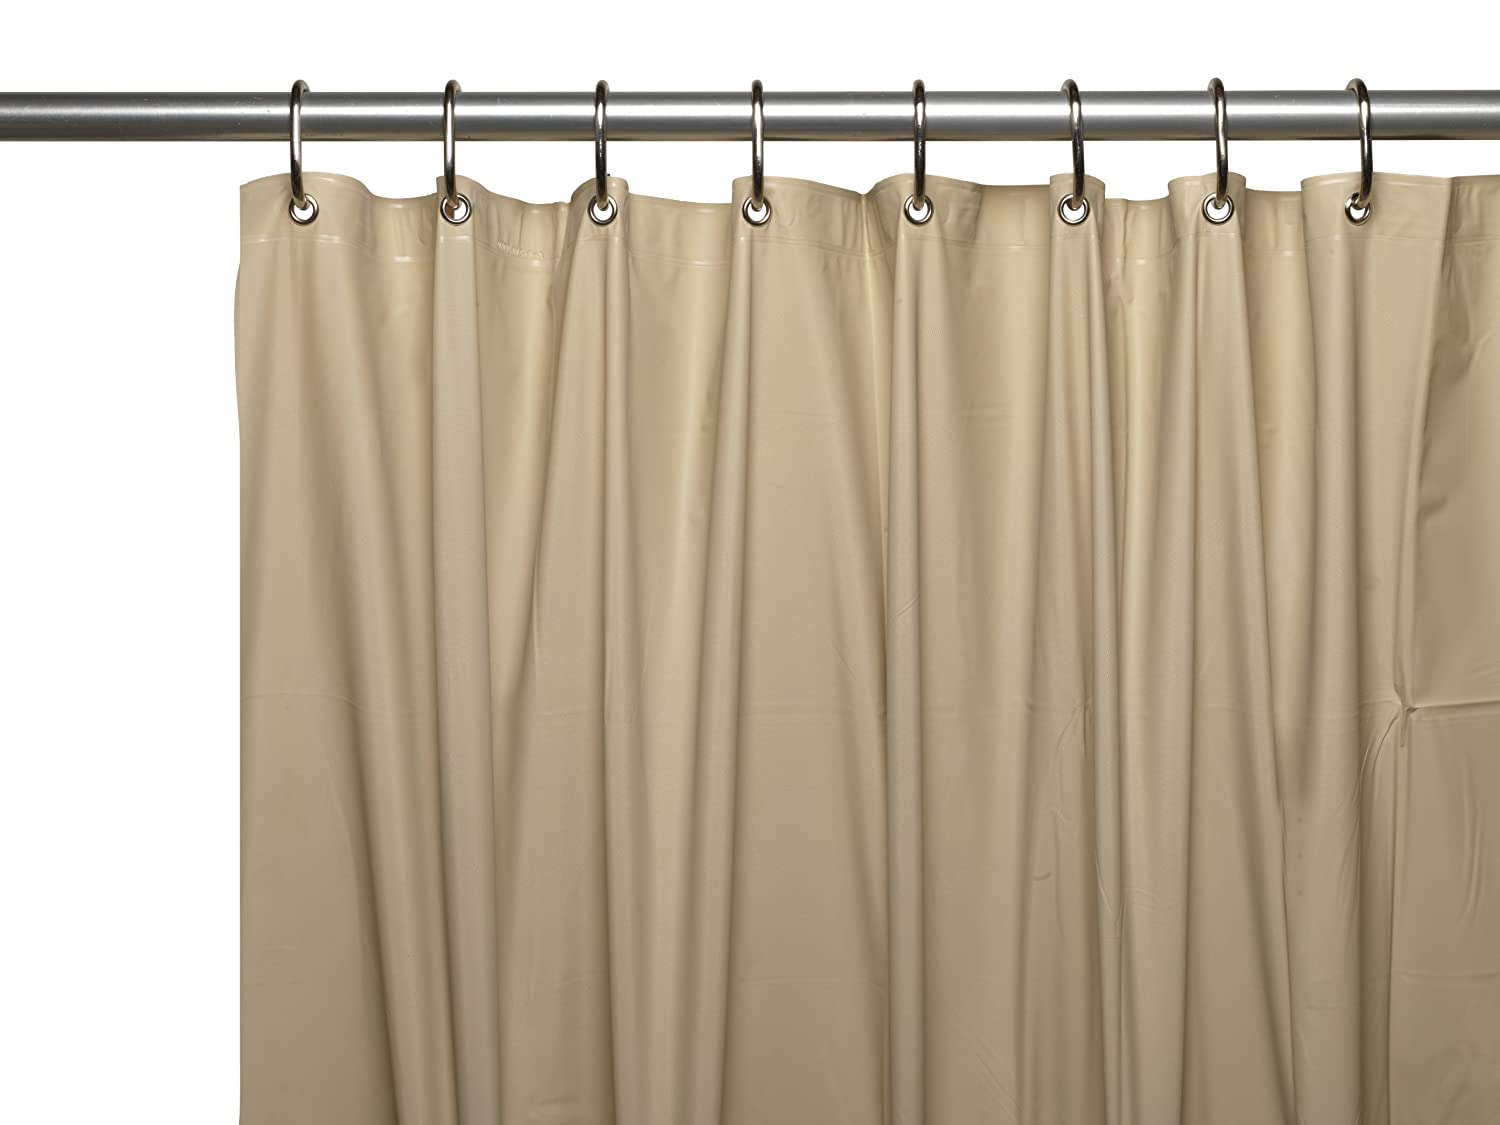 Amazon.com: Carnation Home Fashions 72 By 84 Inch Waterproof Vinyl Shower  Curtain Liner, X Large, Sage: Home U0026 Kitchen